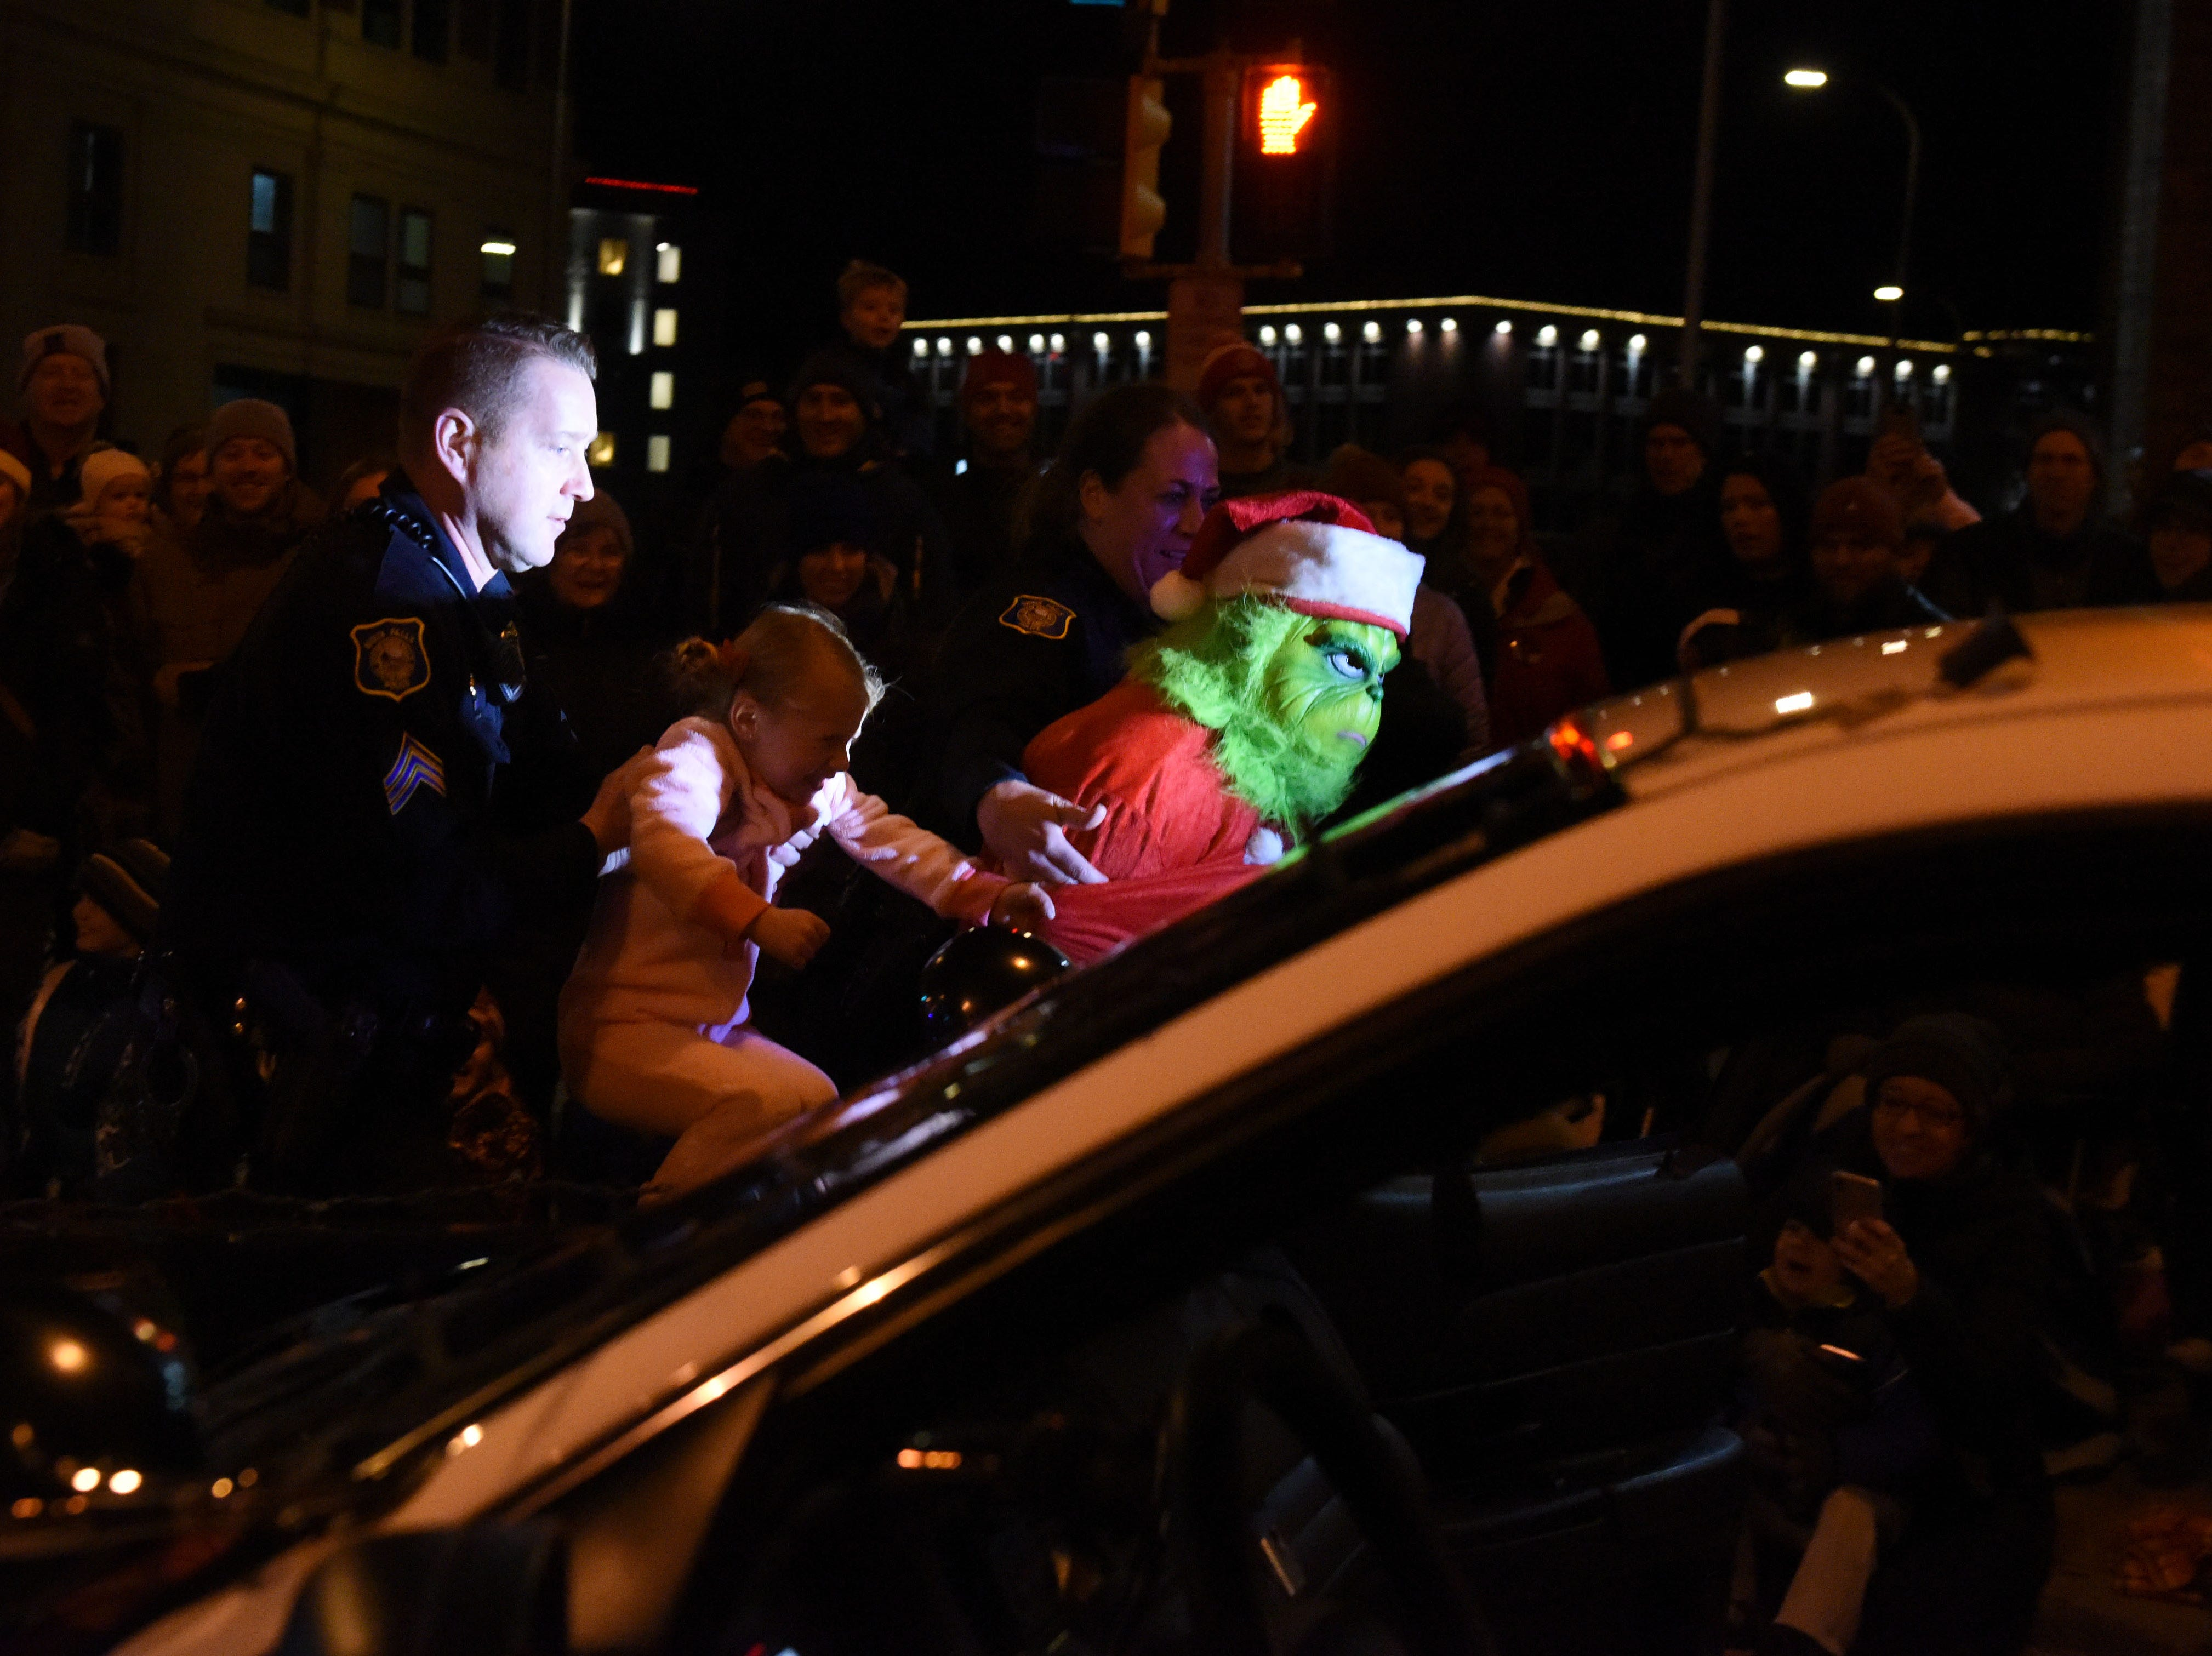 The Grinch made an appearance at the annual Parade of Lights in downtown Sioux Falls, S.D., Friday, Nov. 23, 2018.